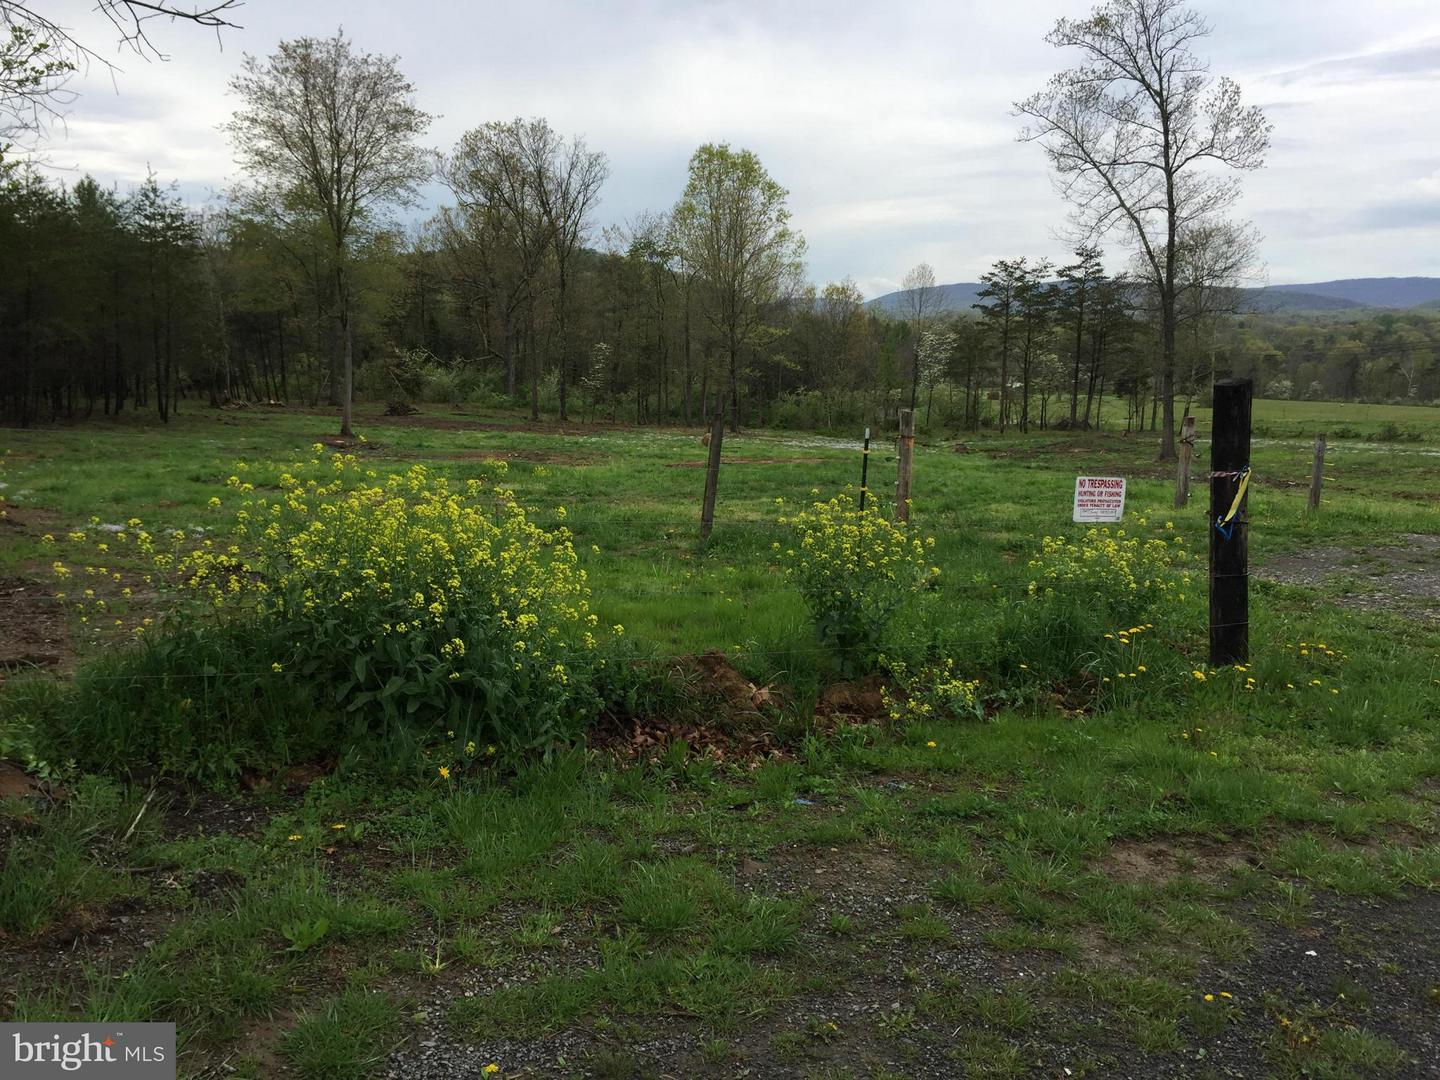 Wv 9 And Golliday Rd., Great Cacapon, WV, 25422